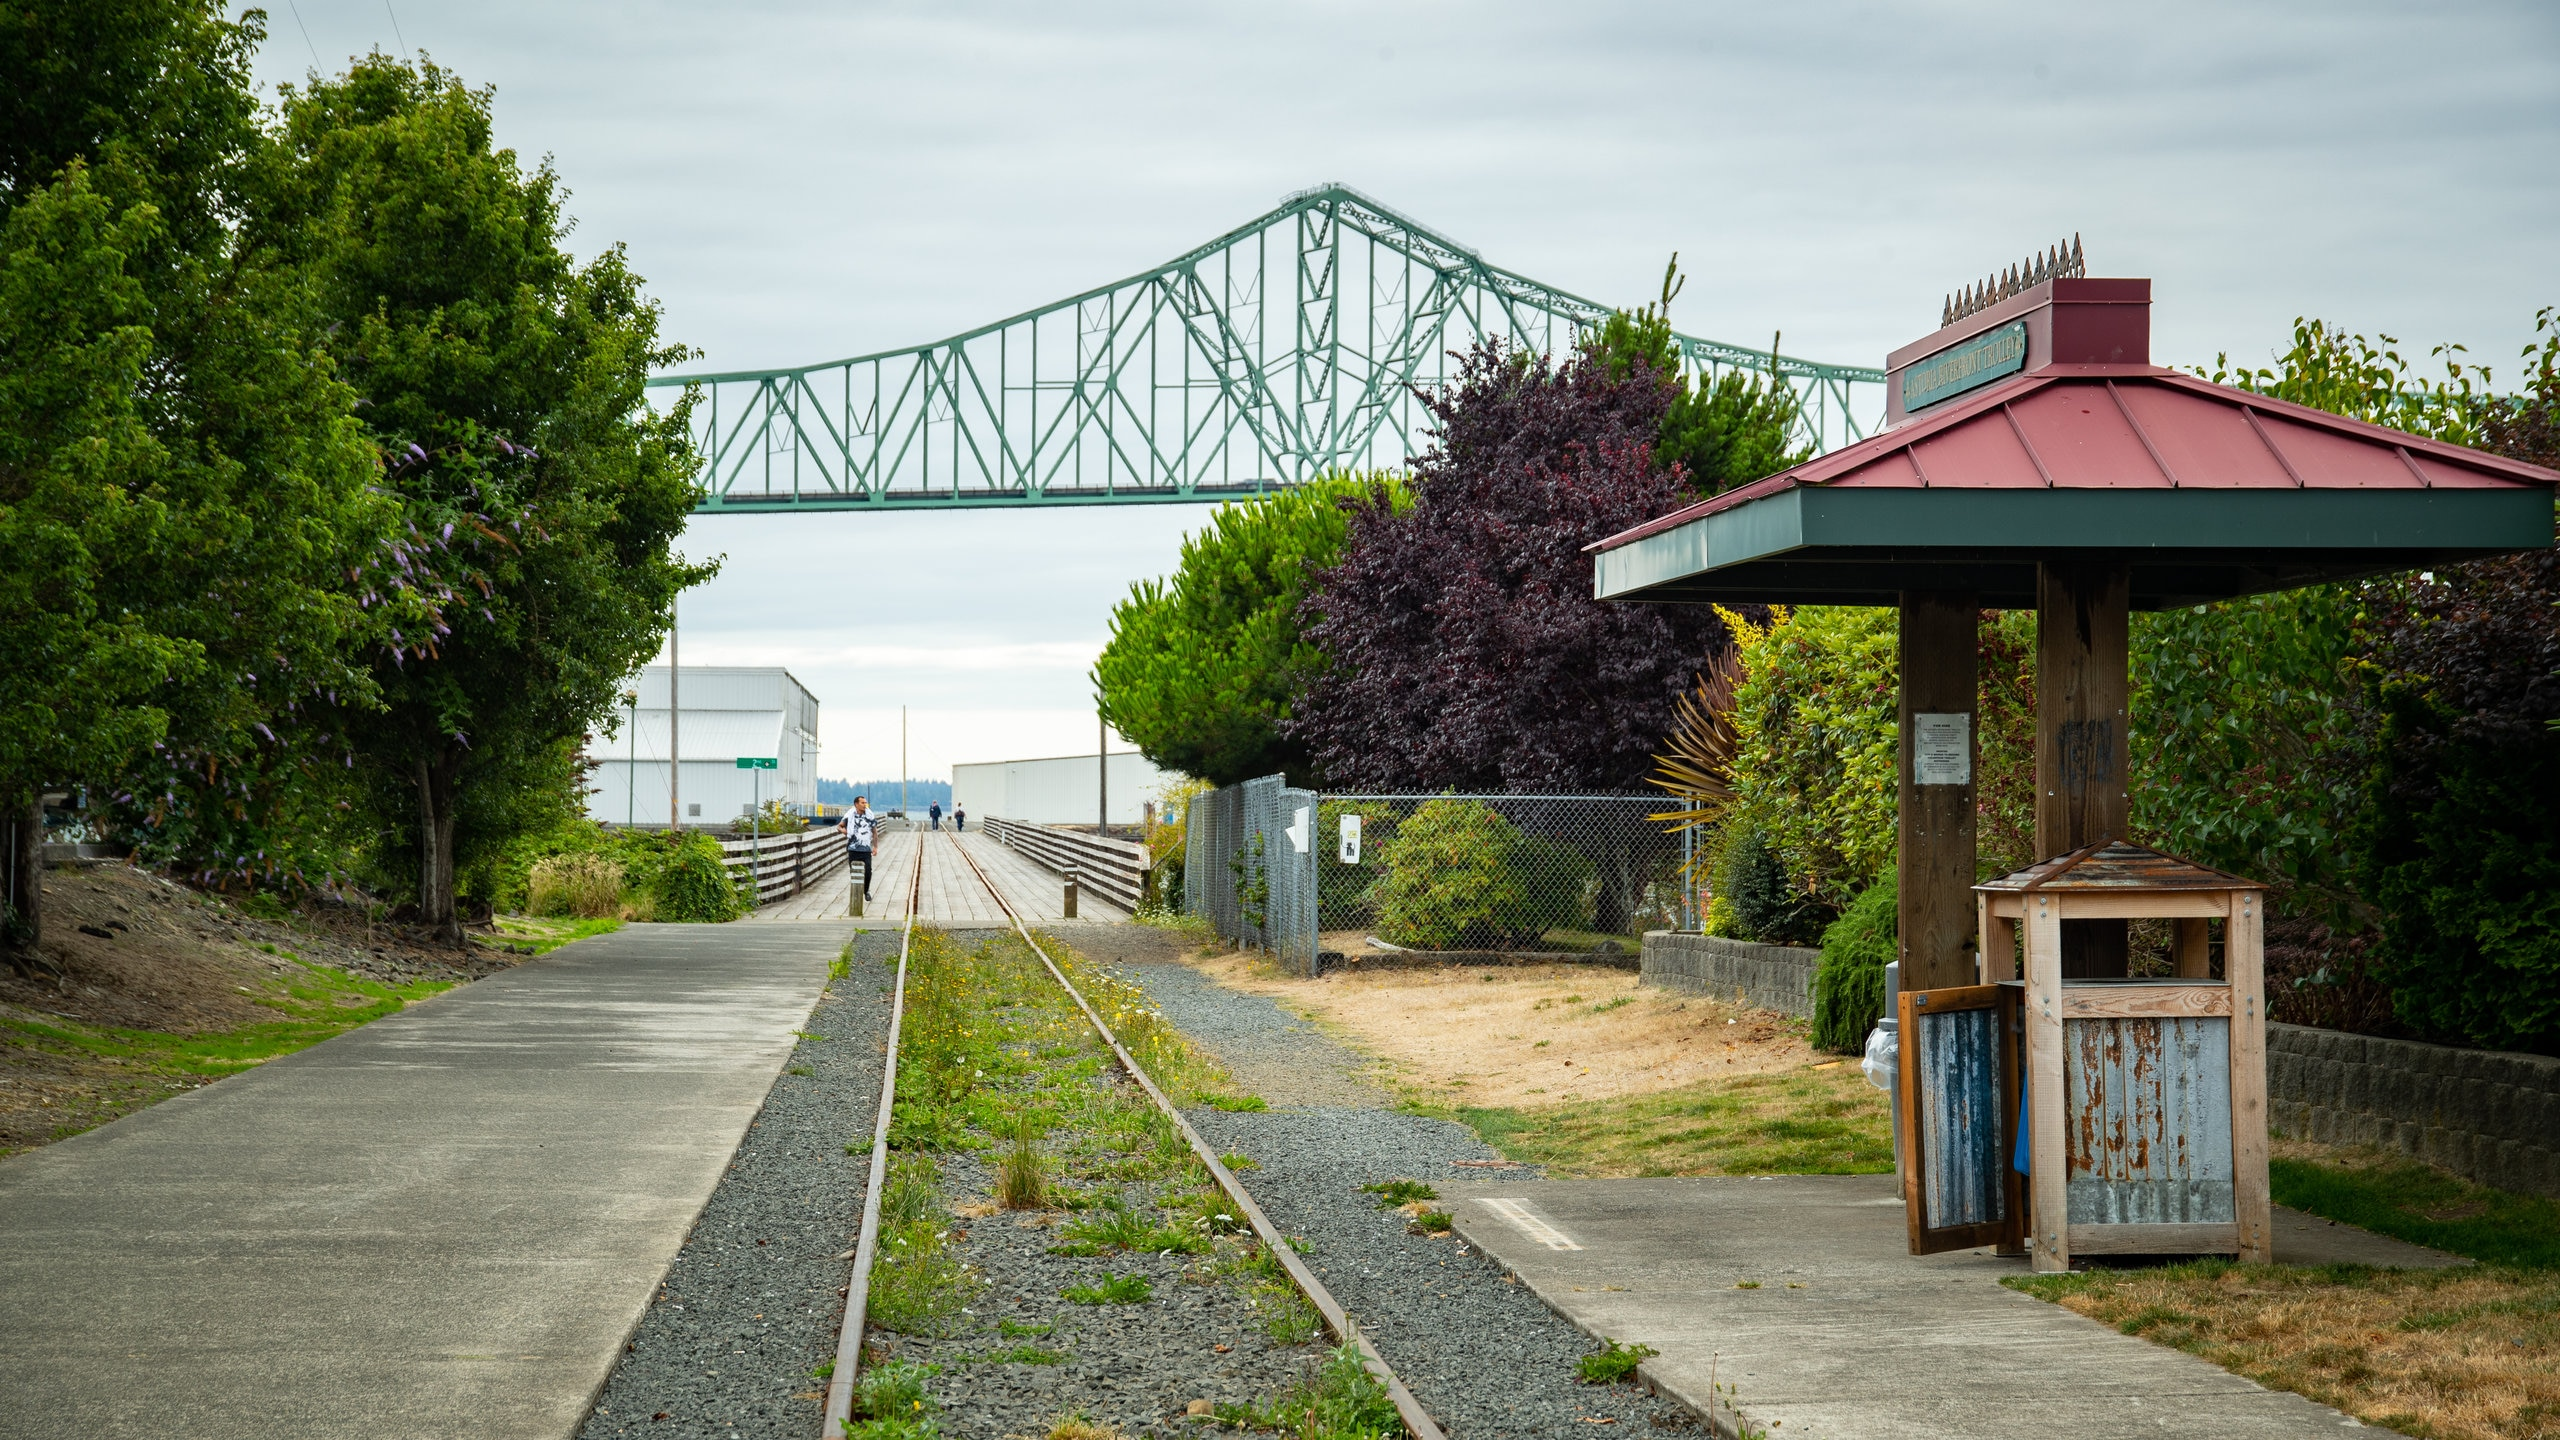 Enjoy an outing to Astoria Riverfront Trolley during your stay in Astoria. Amble around the area's riverfront or seek out the cycling trails.